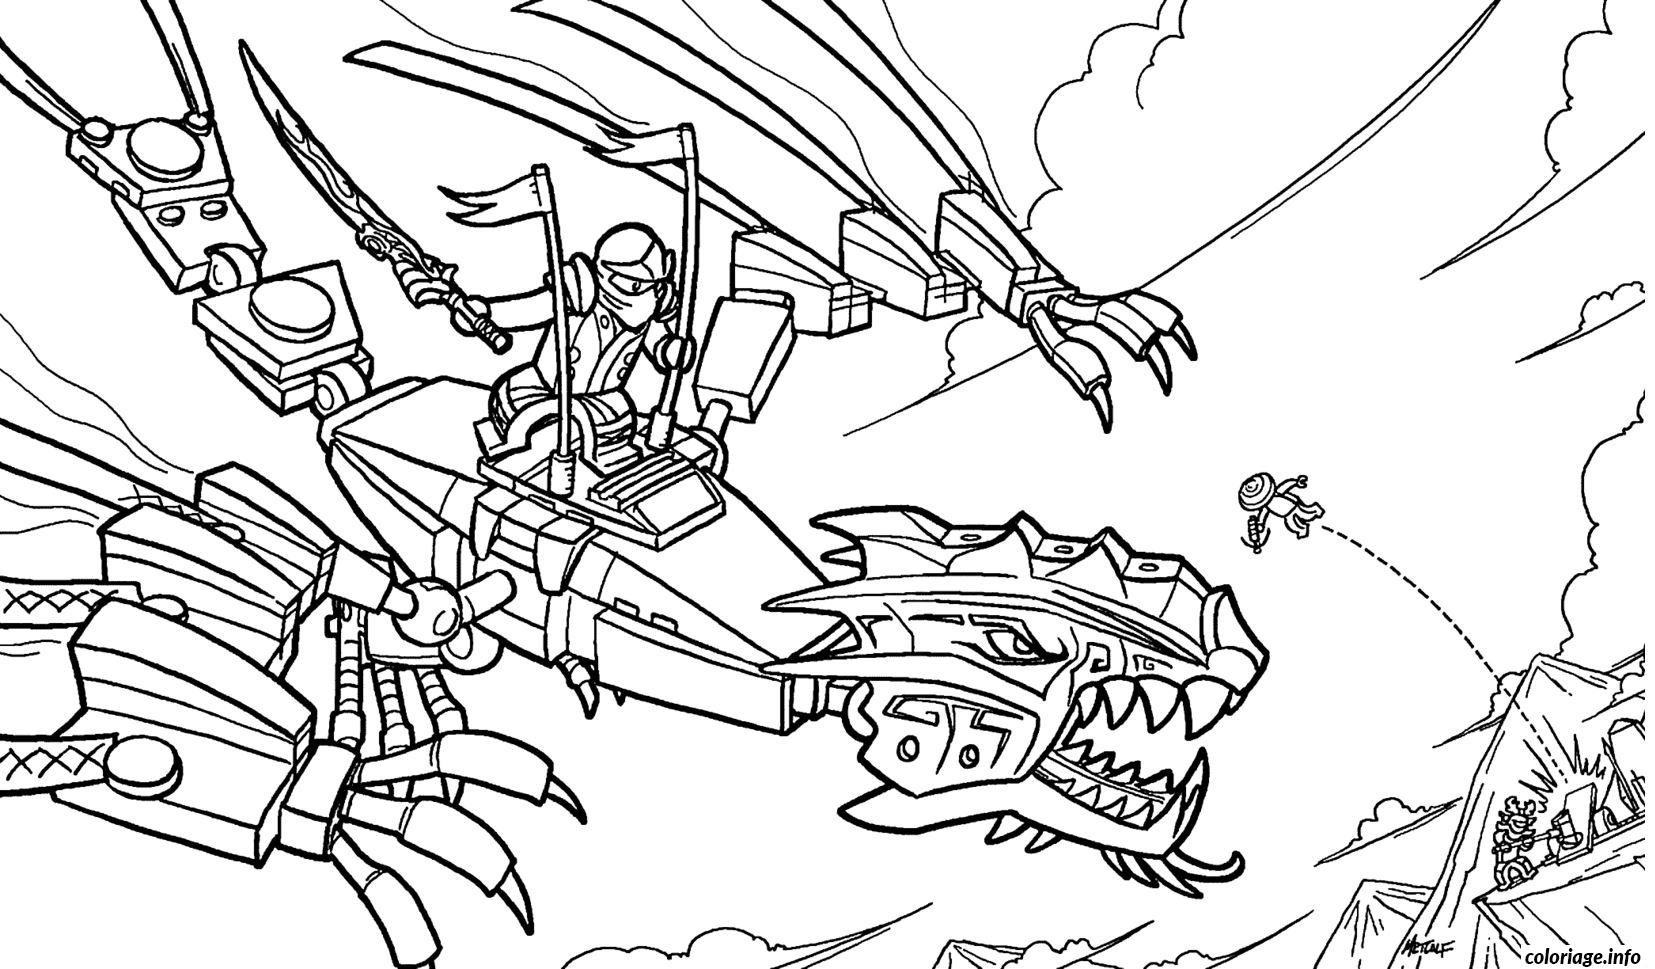 Lego Dragon Coloring Pages At Getdrawings Com Free For Personal